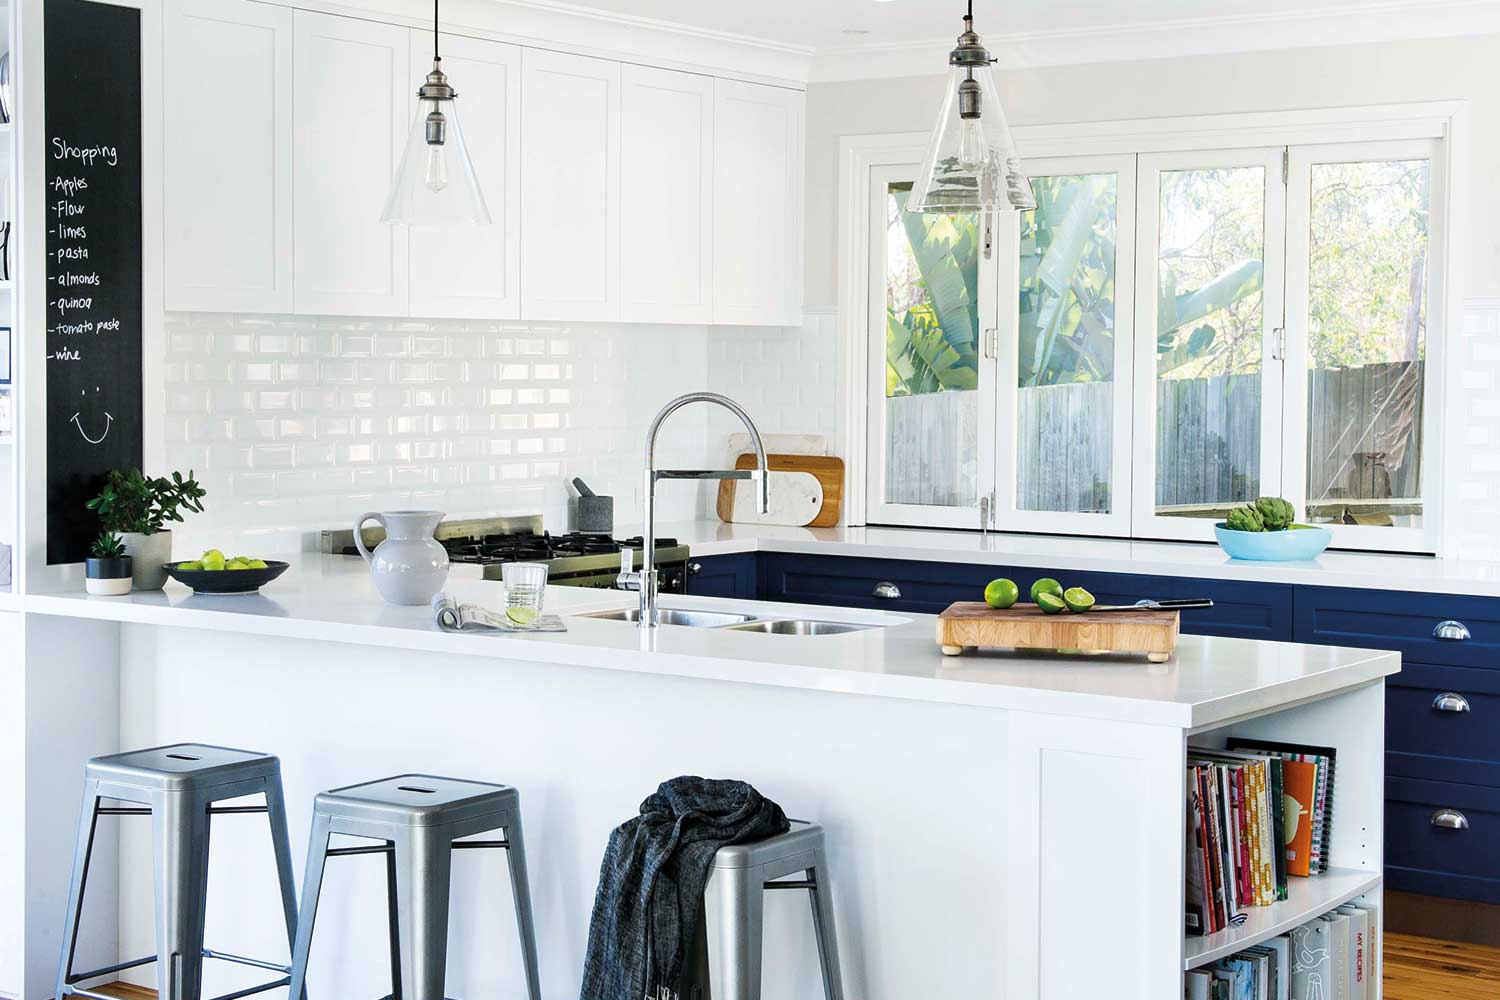 5 kitchens that use white subway tiles